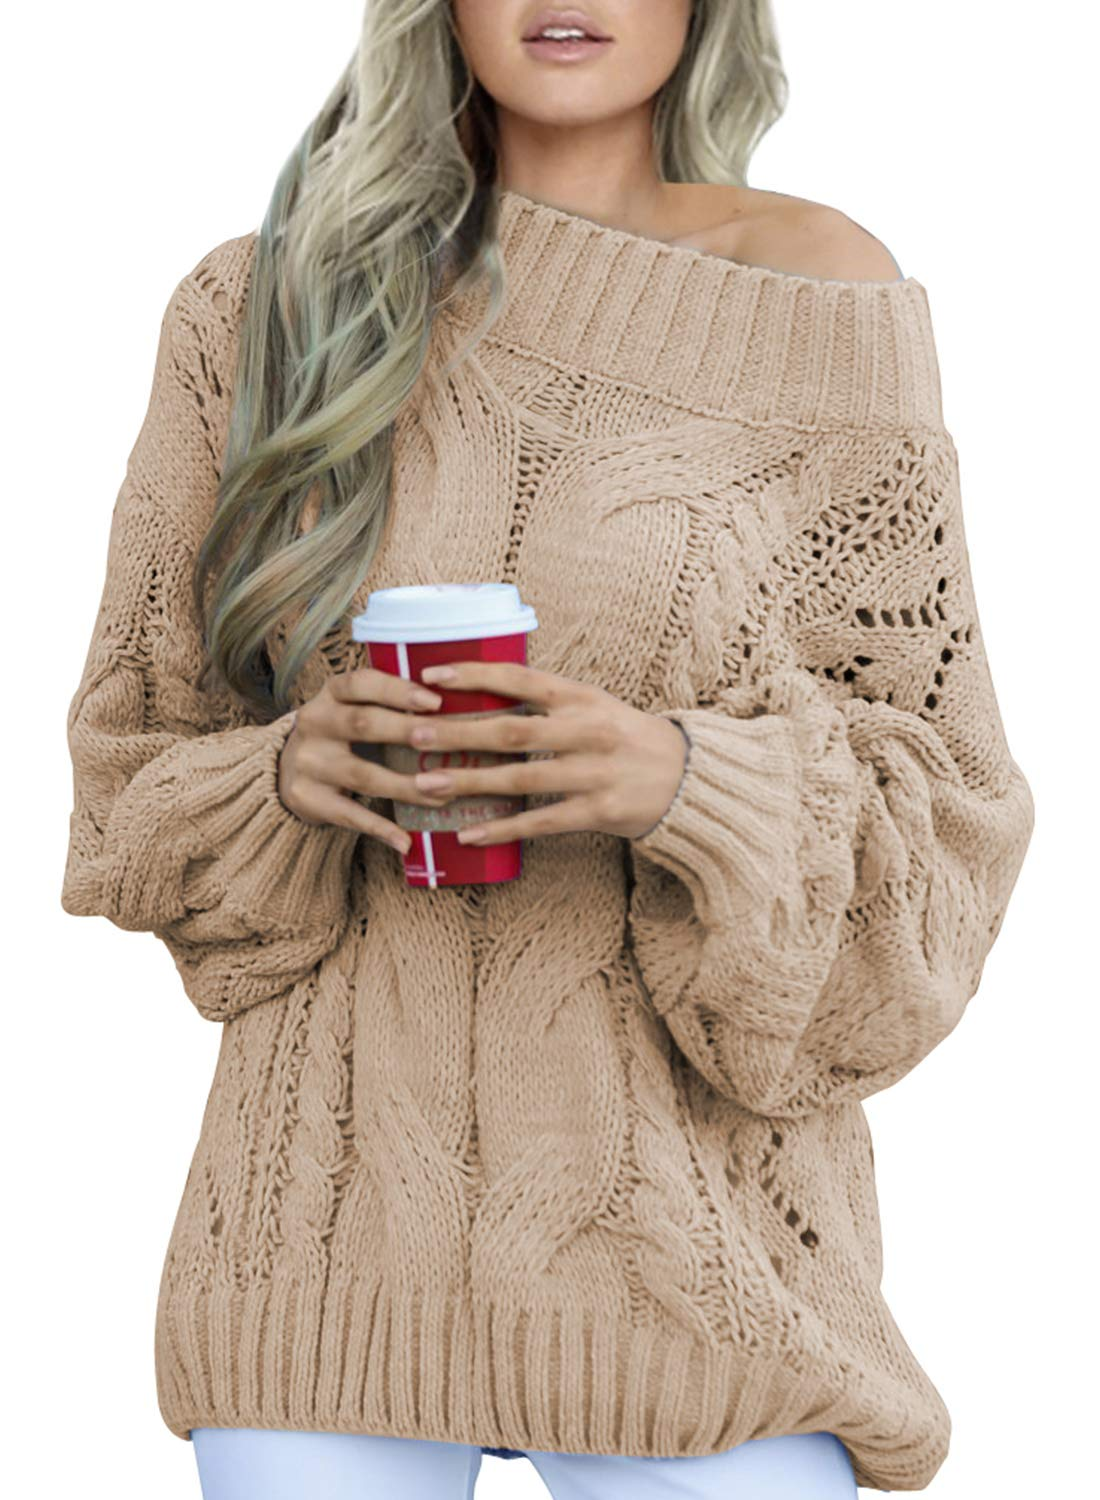 Acelitt Women's Casual Loose Crewneck One Shoulder Long Sleeve Winter Warm Oversized Chunky Knitted Sweater Jumper Pullover Tops Khaki Large by Acelitt